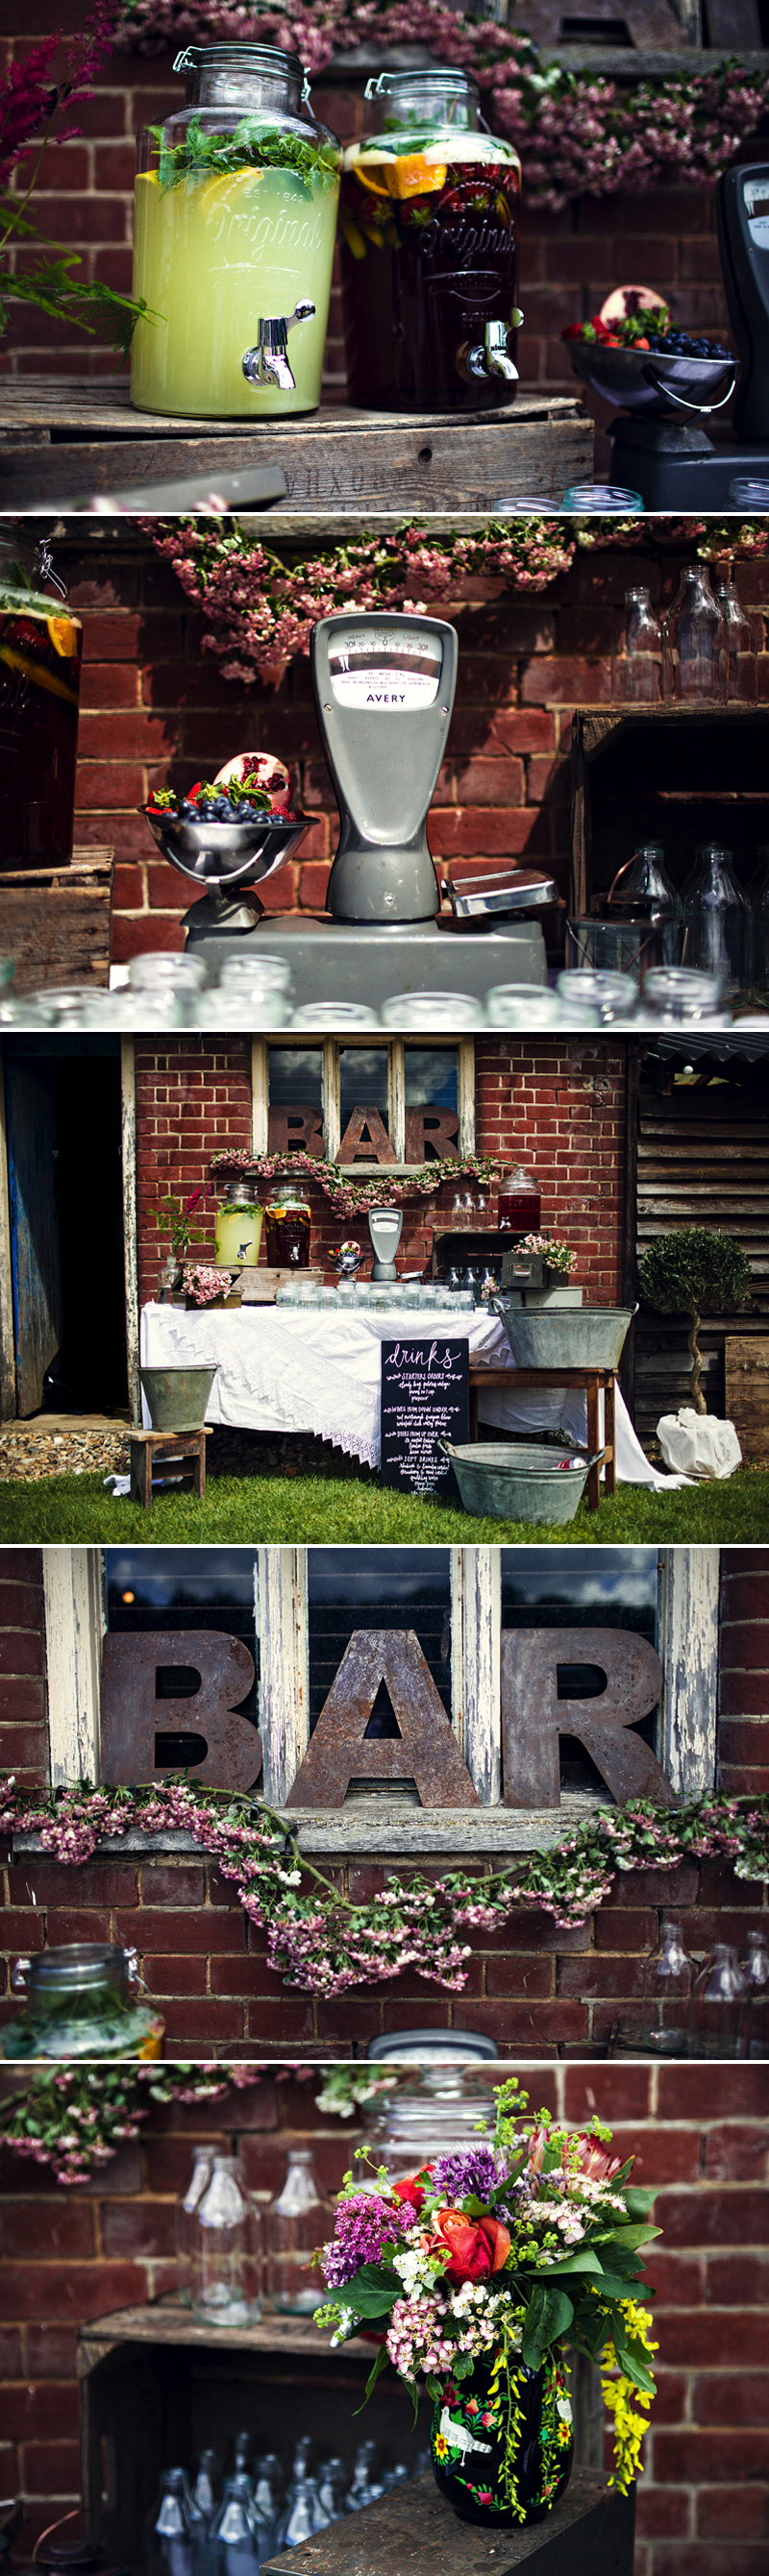 wedding-styling-prop-hire-little-lending-company-kev-foster-photography-003